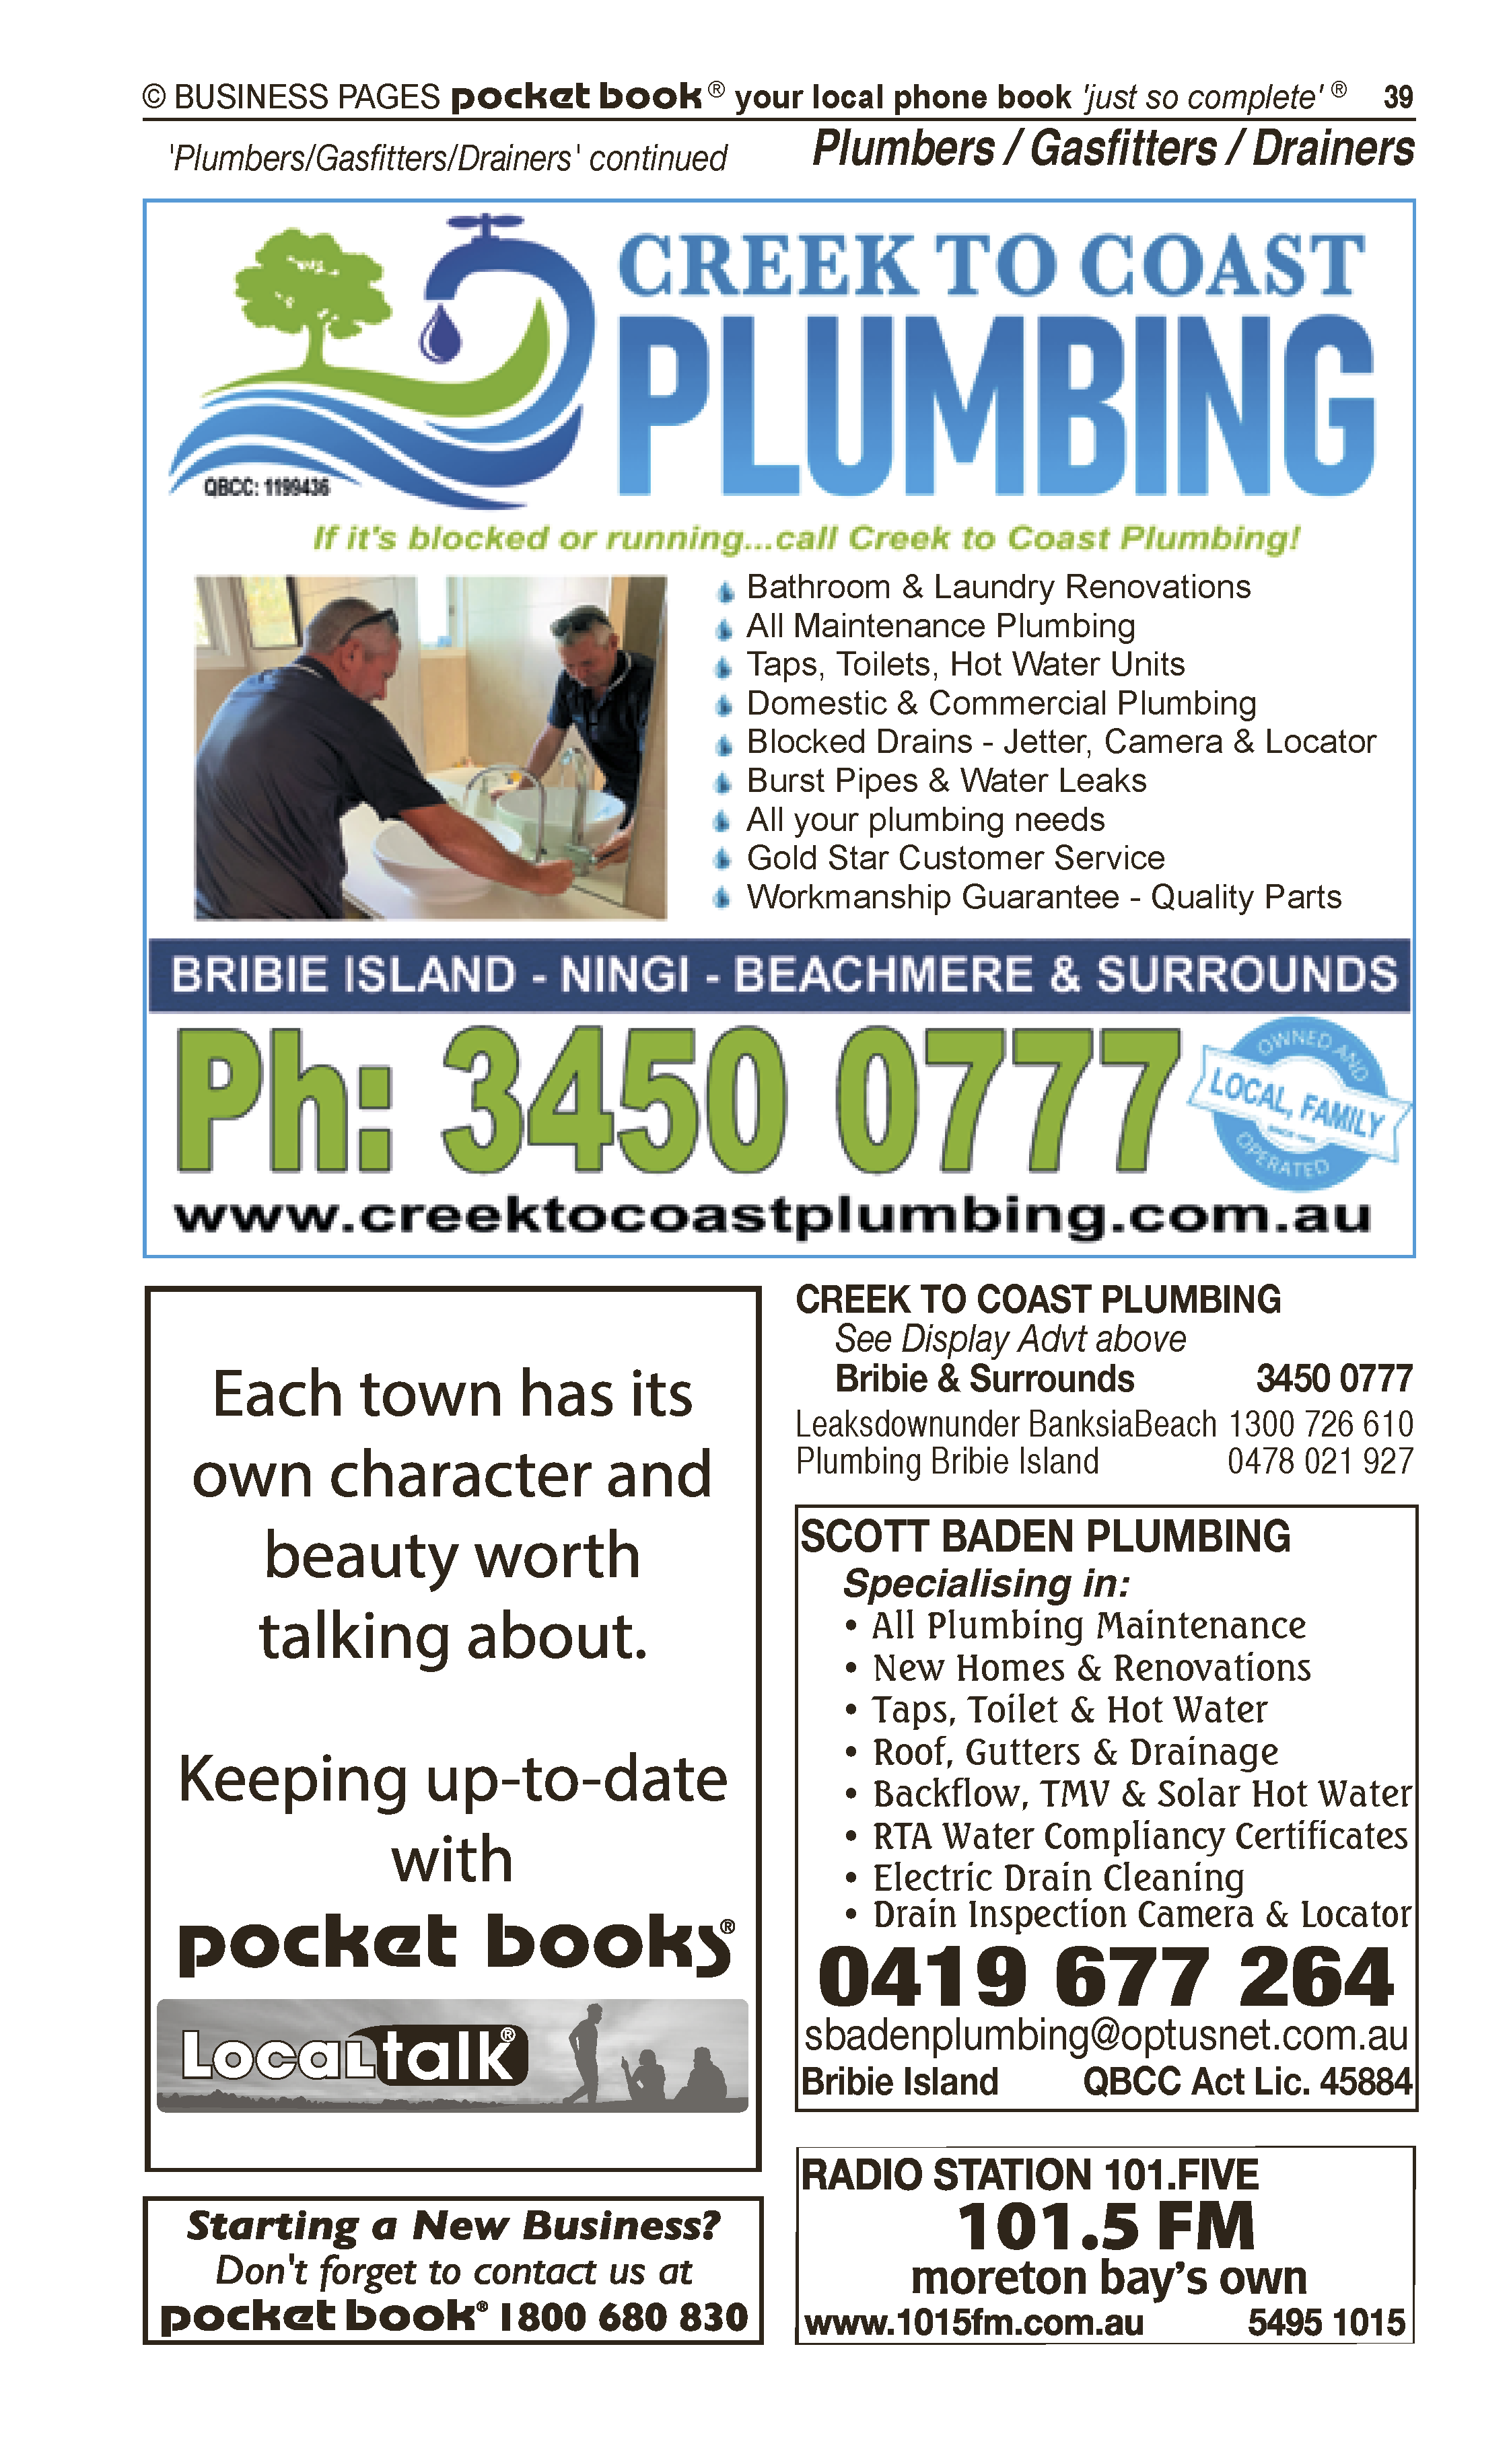 Creek To Coast Plumbing | Gasfitters in Upper Caboolture | PBezy Pocket Books local directories - page 39